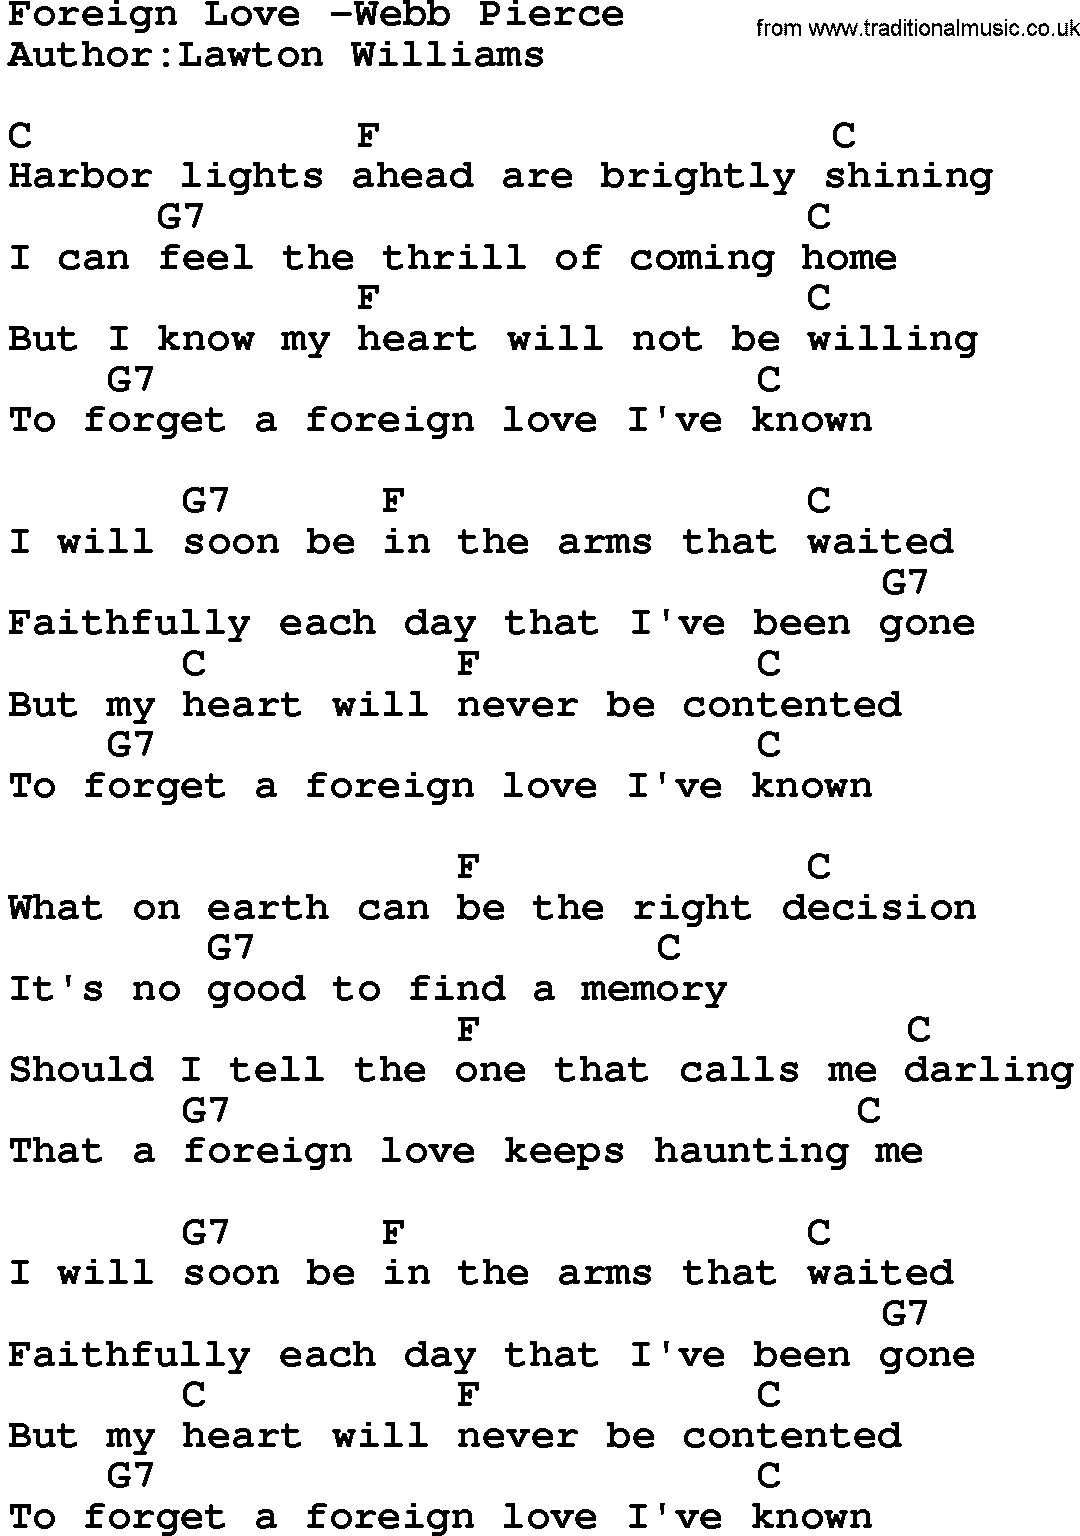 Country Musicforeign Love Webb Pierce Lyrics And Chords